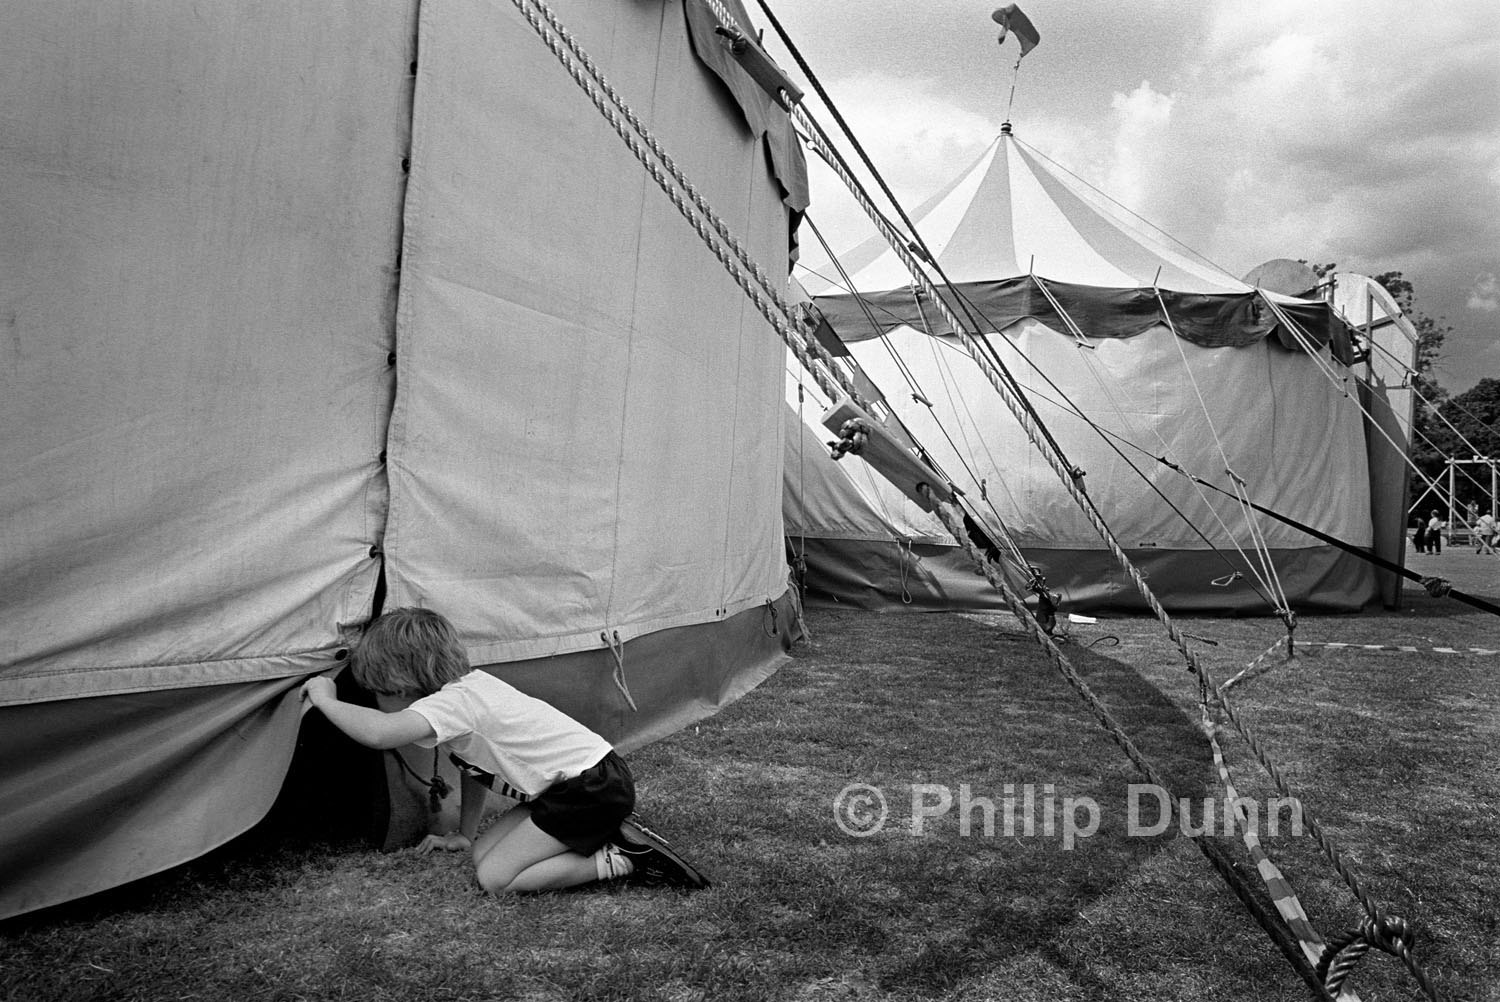 A small boy lifts the canvas of a circus tent to look inside